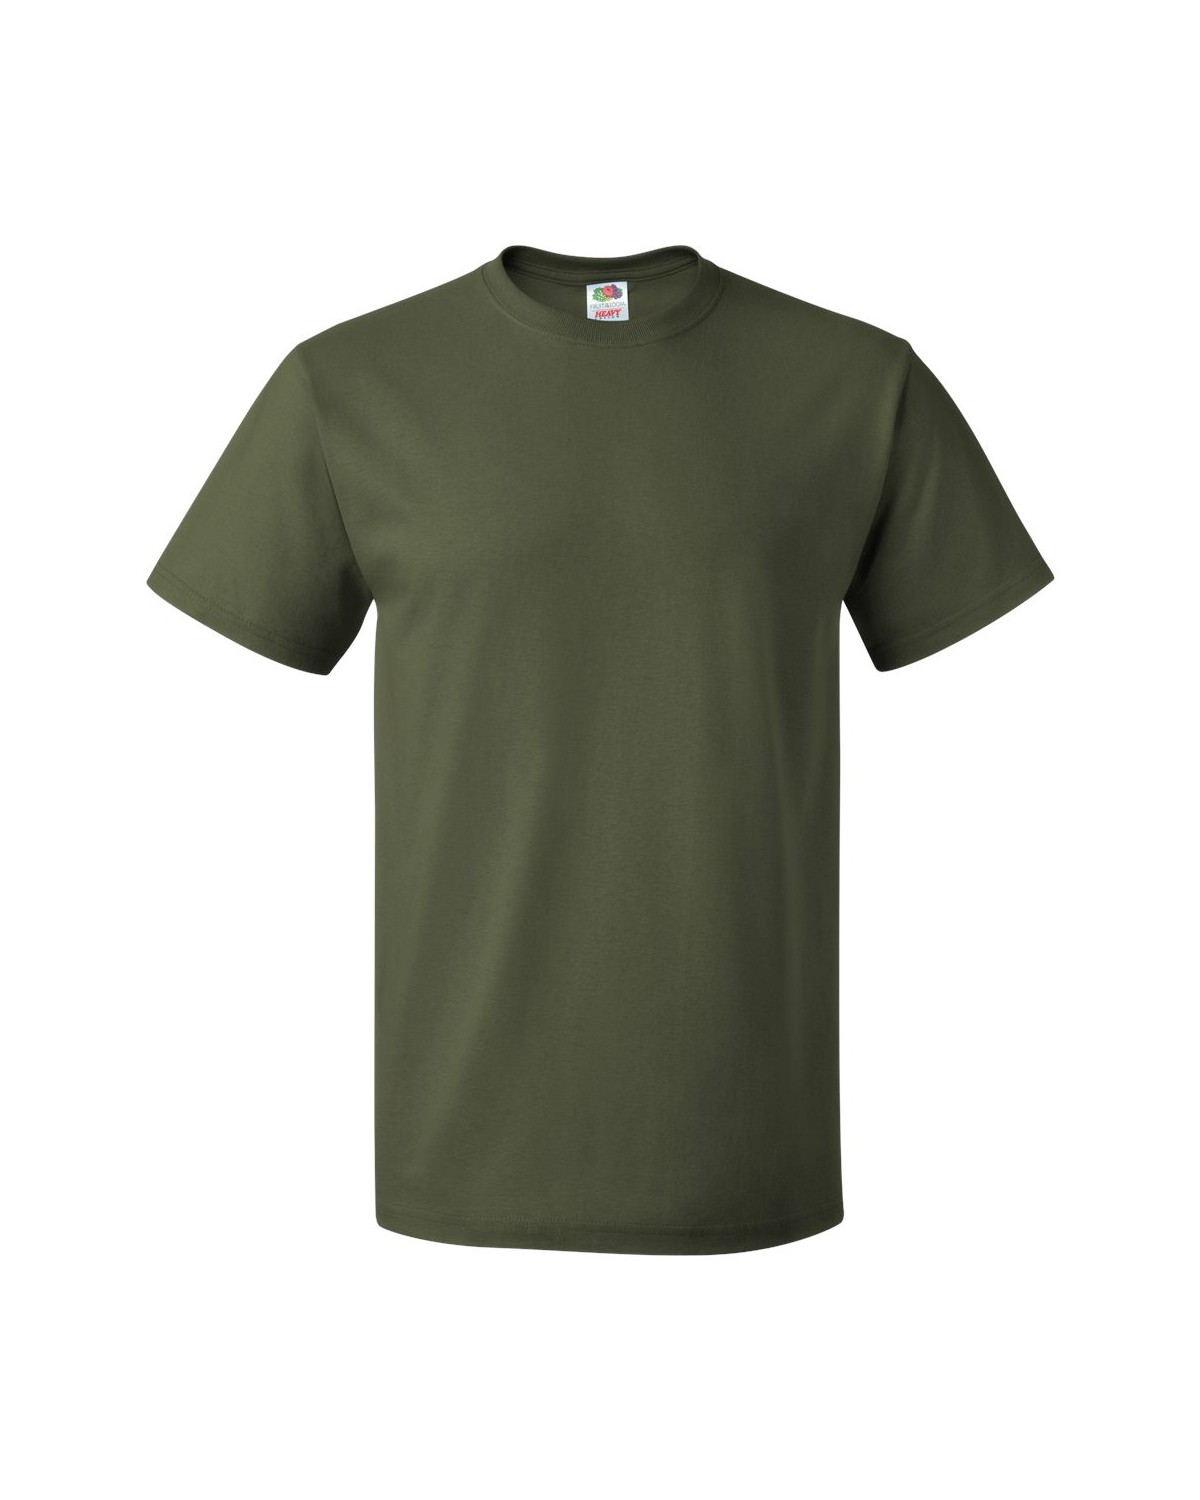 3930R Fruit of the Loom MILITARY GREEN